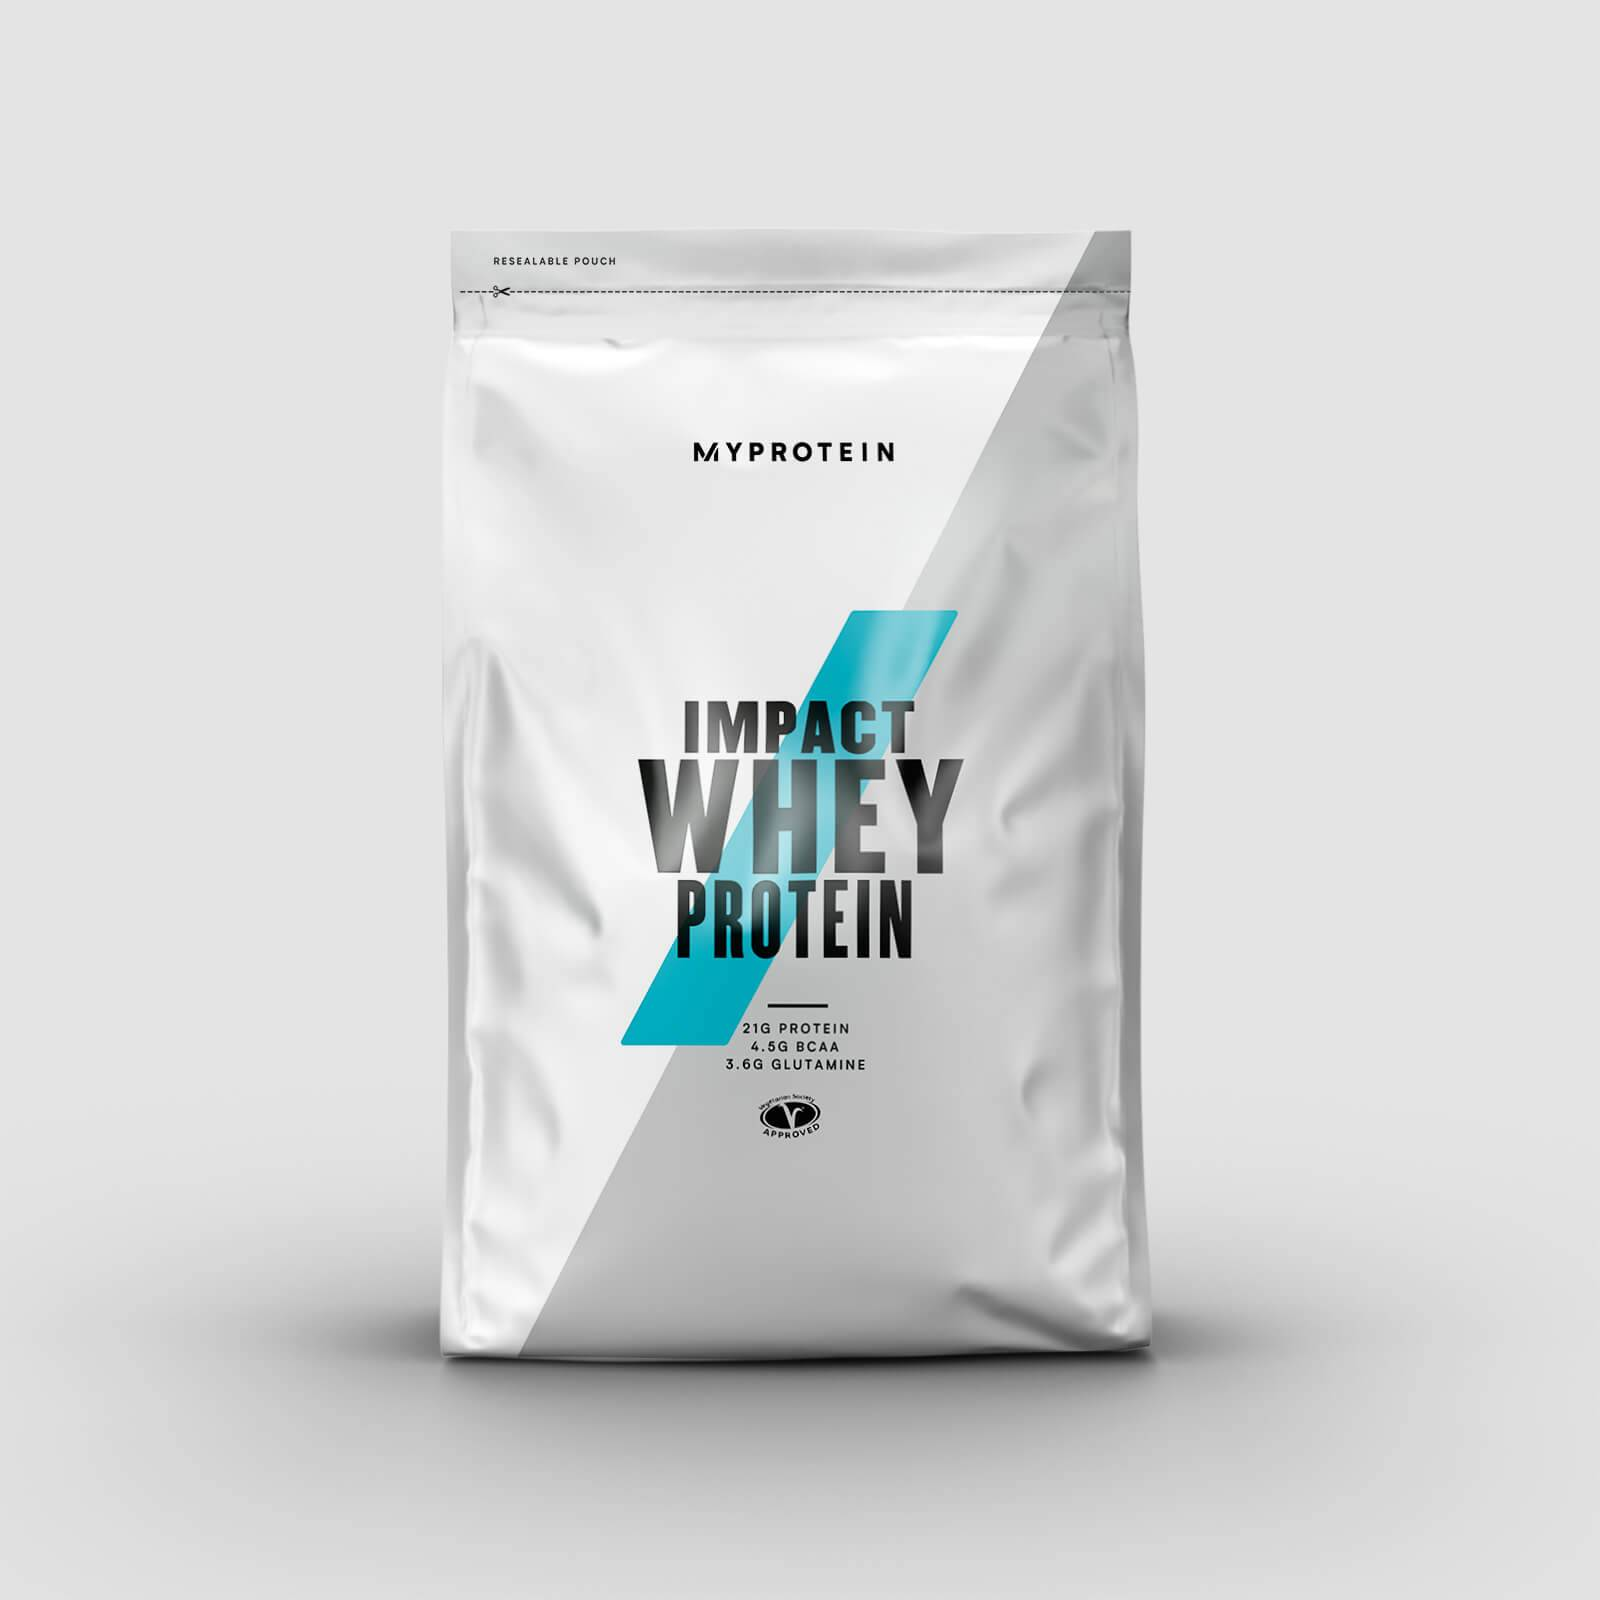 Myprotein Impact Whey Protein - 1kg - Chocolat Onctueux